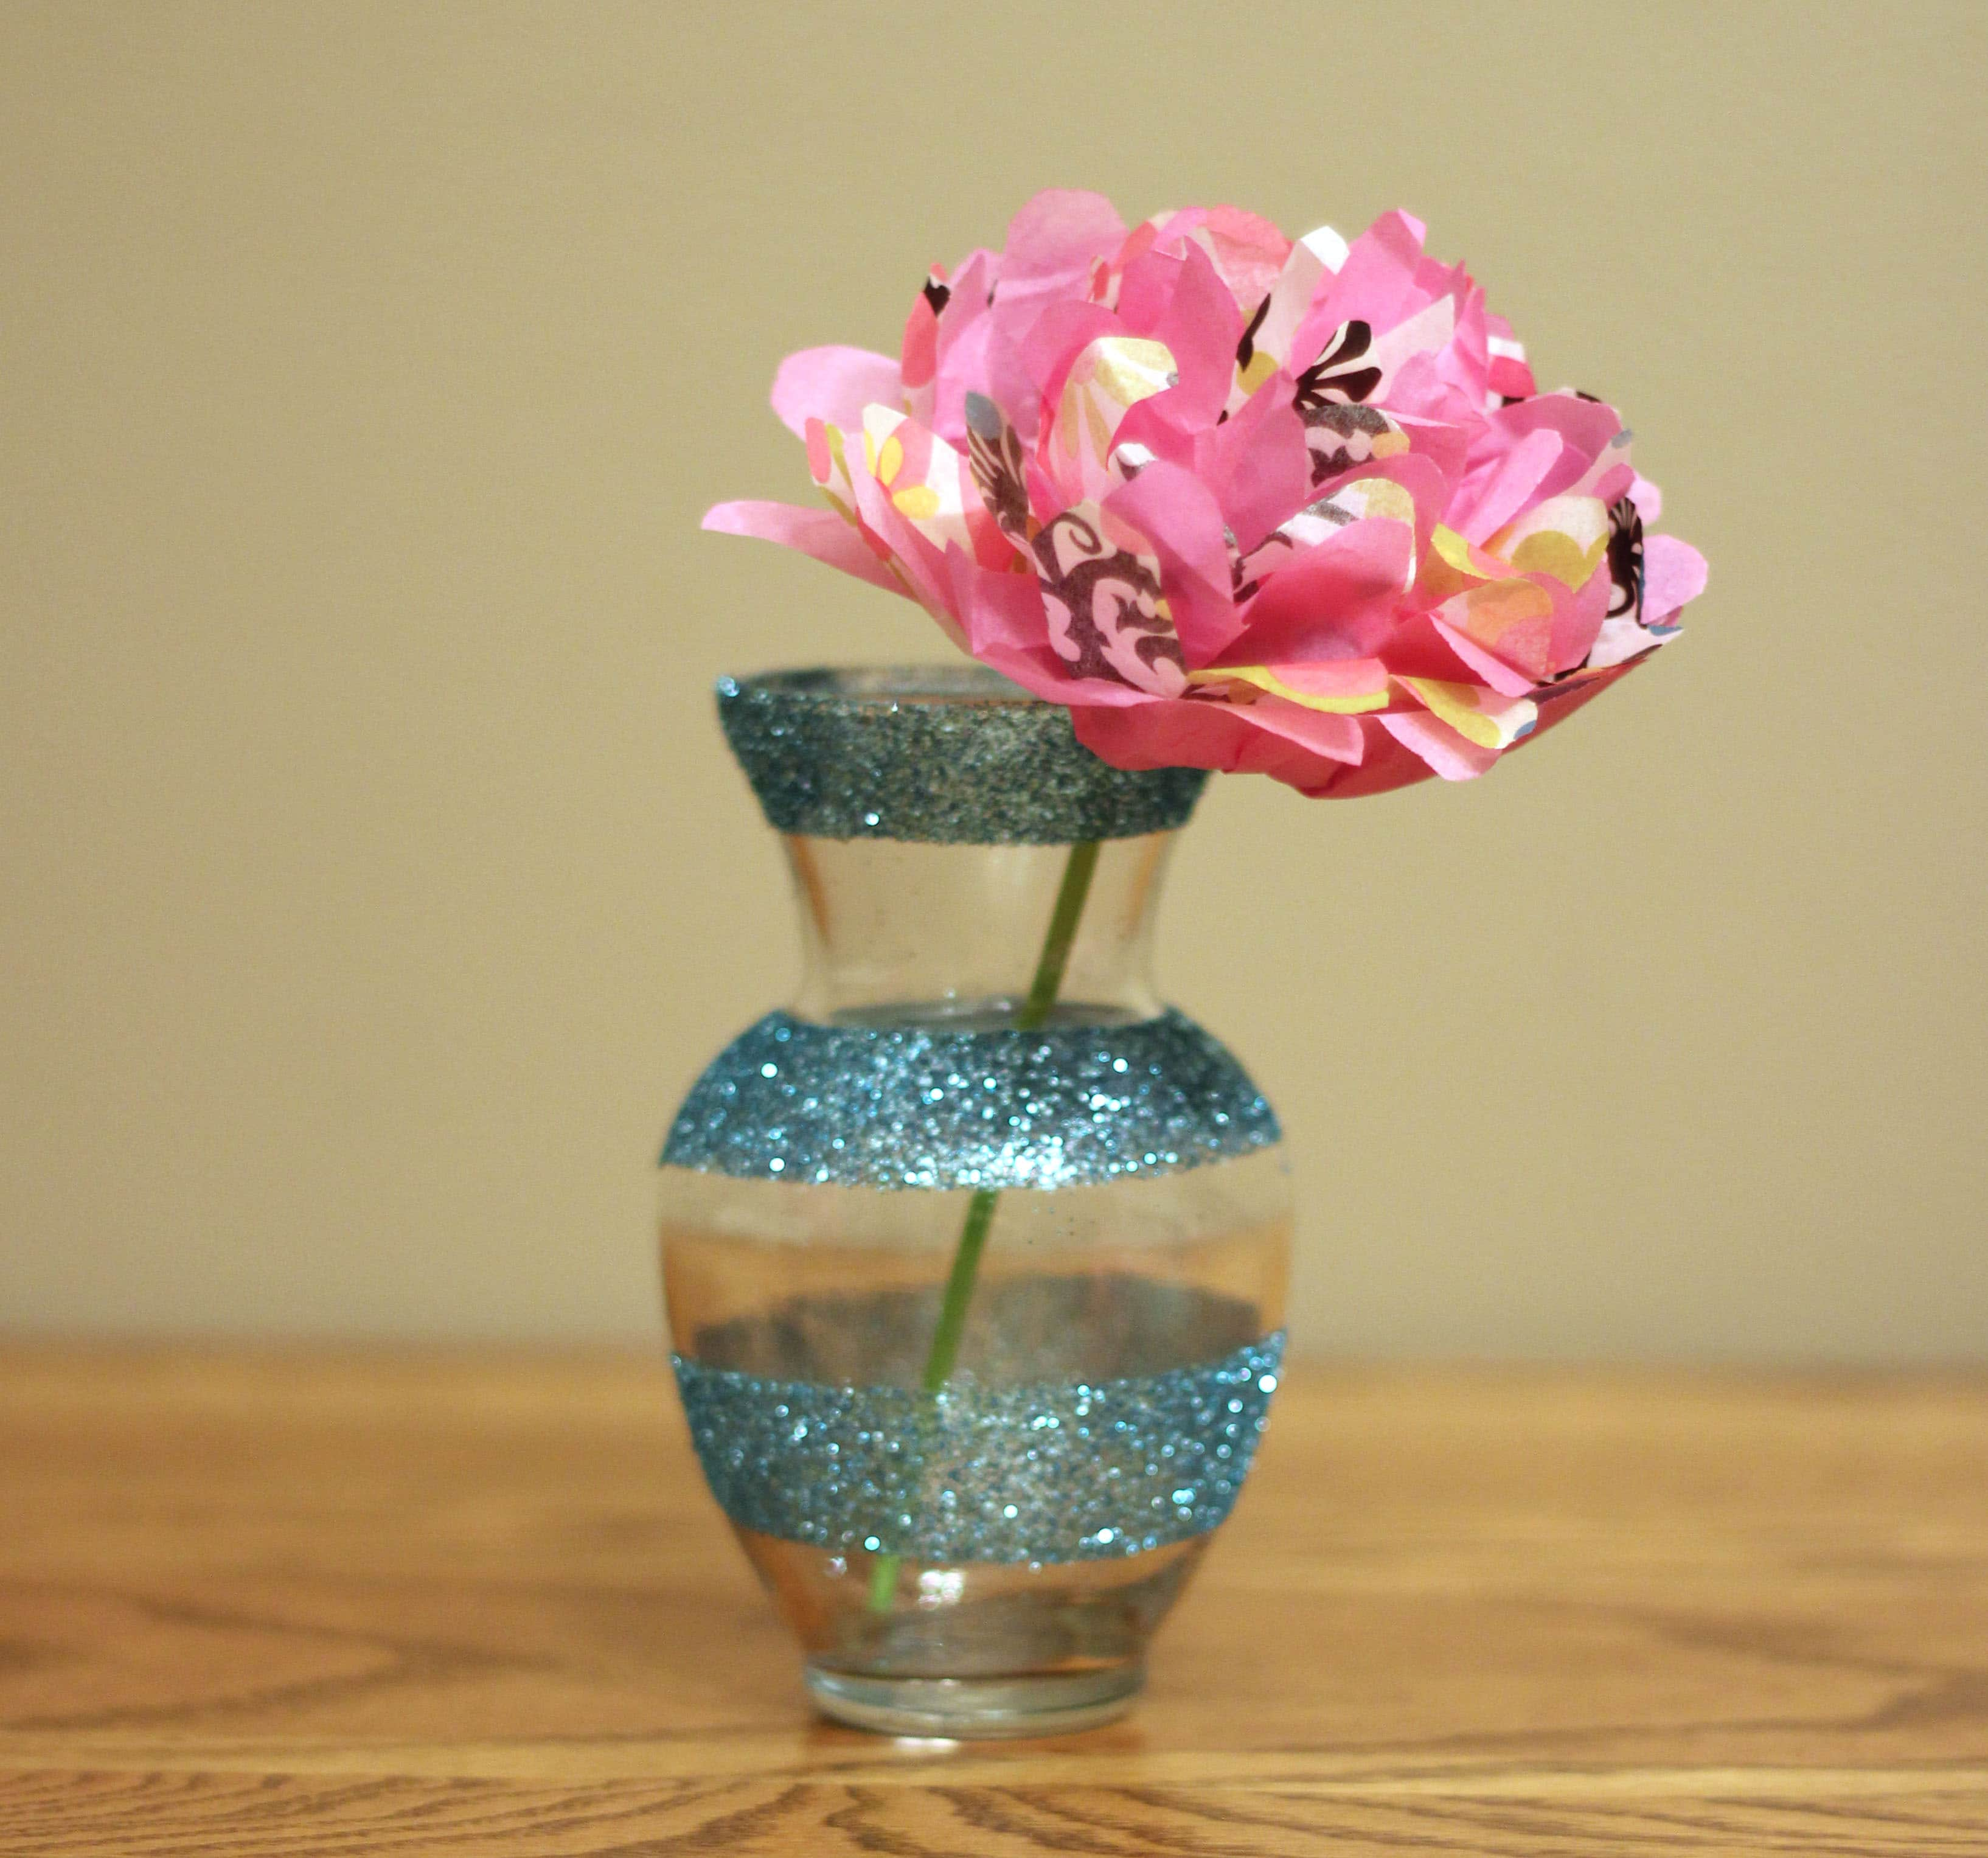 Dollar decor girly glitter vases - Great decorative flower vase designs ...